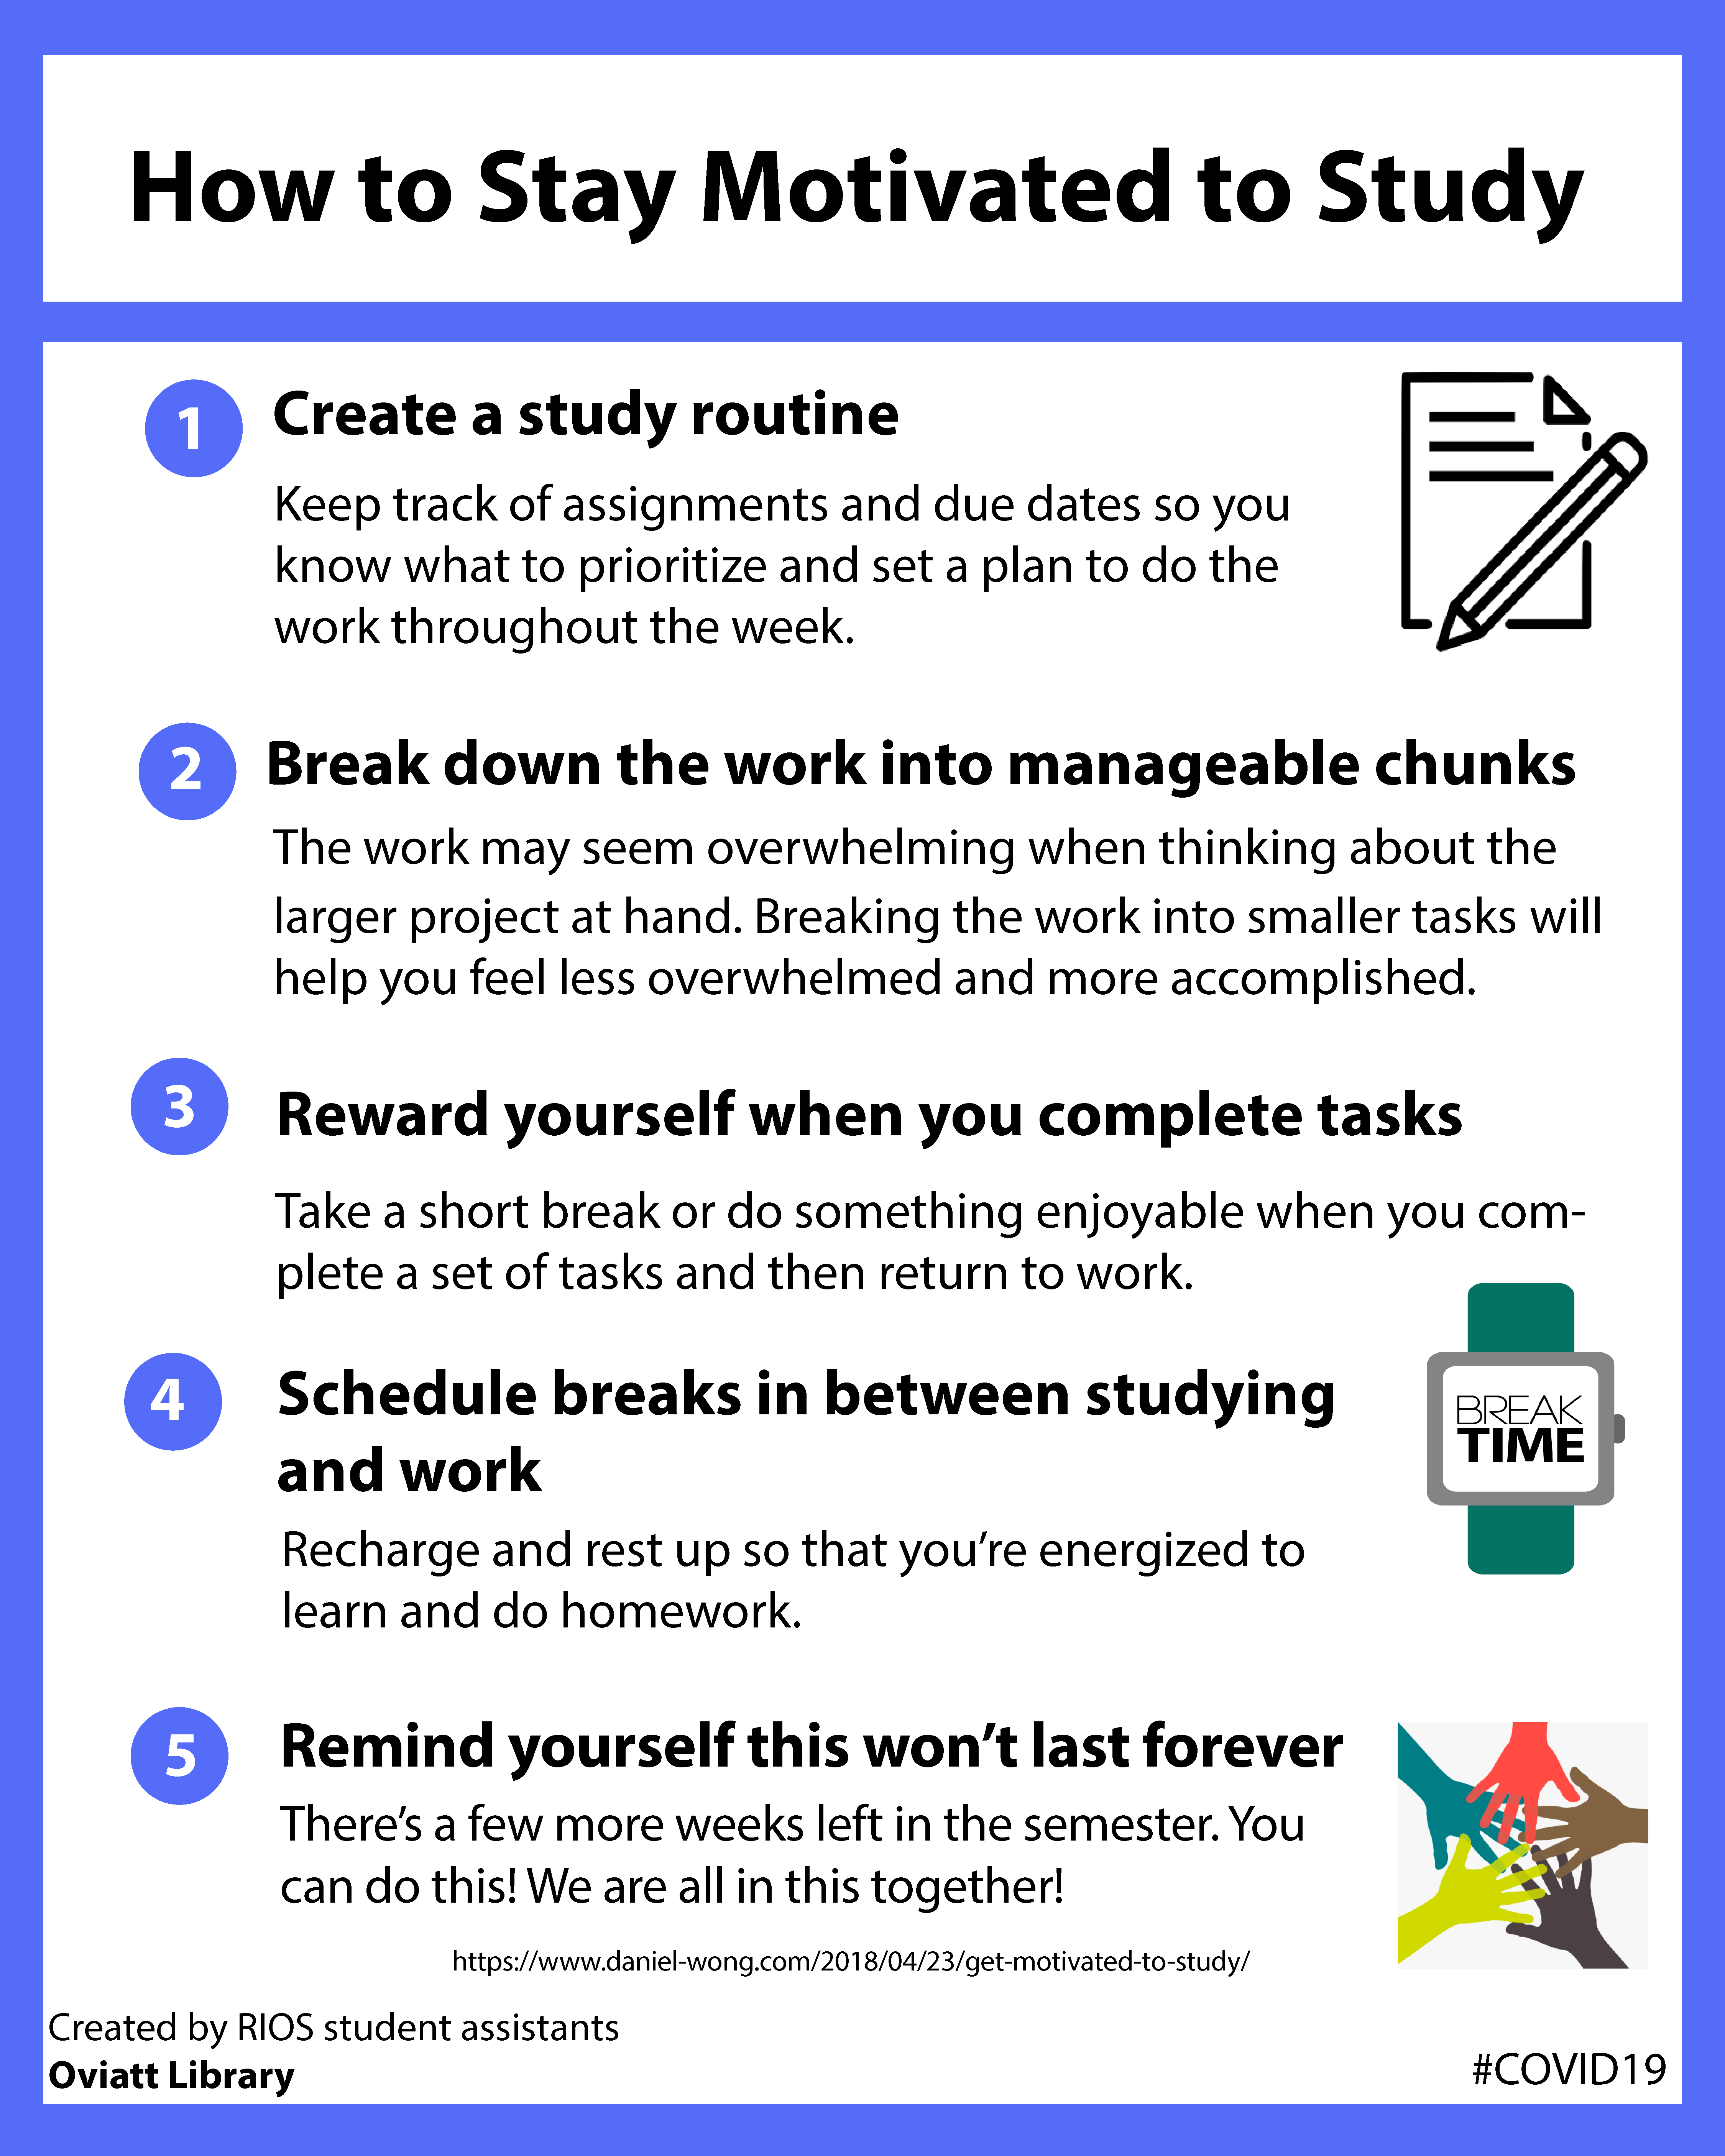 How to Stay Motivated to Study